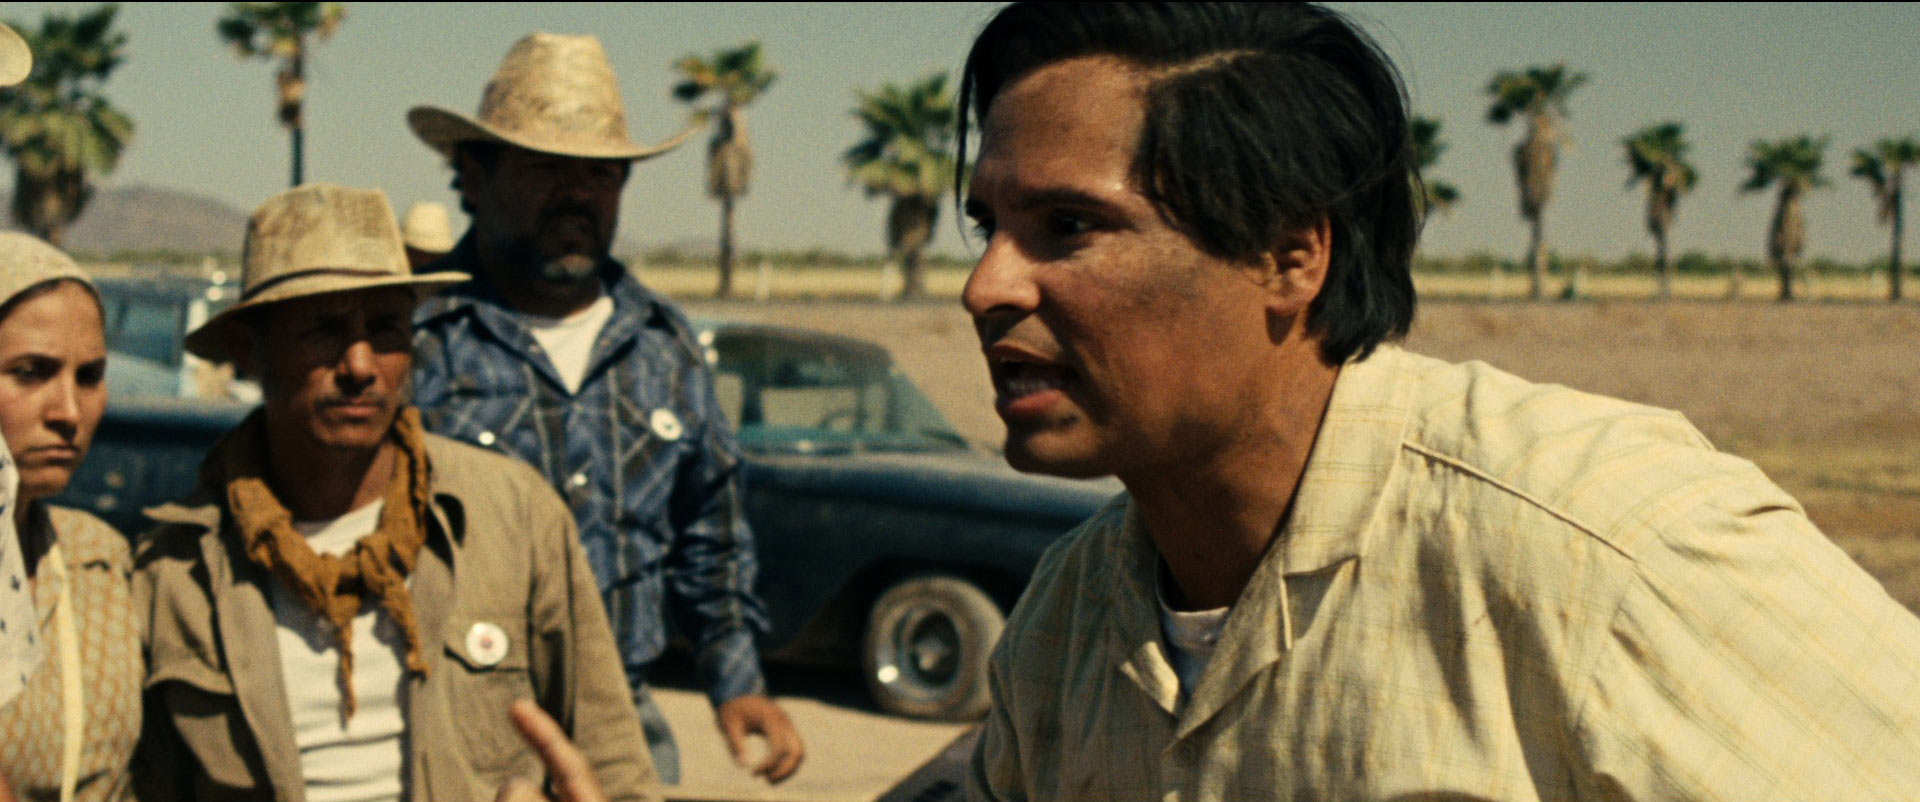 Michael Peña as the first-generation Mexican-American union organizer Cesar Chavez